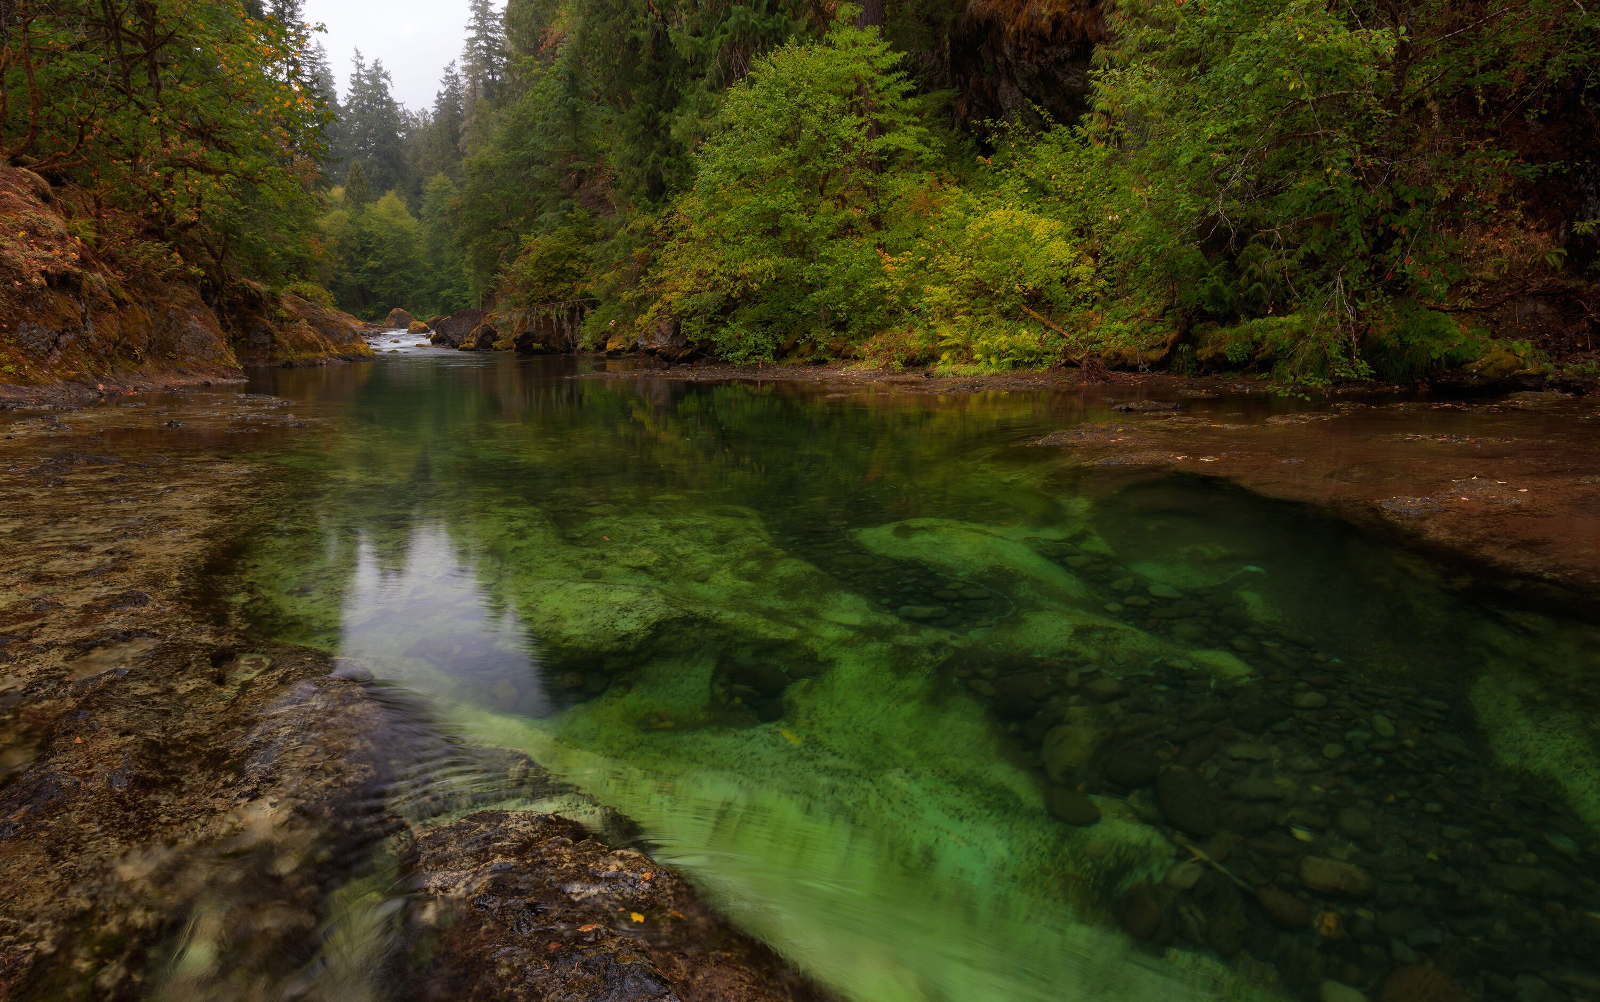 Press Release: 9th Circuit Court of Appeals Upholds State Efforts to Protect Salmon Habitat from Mining